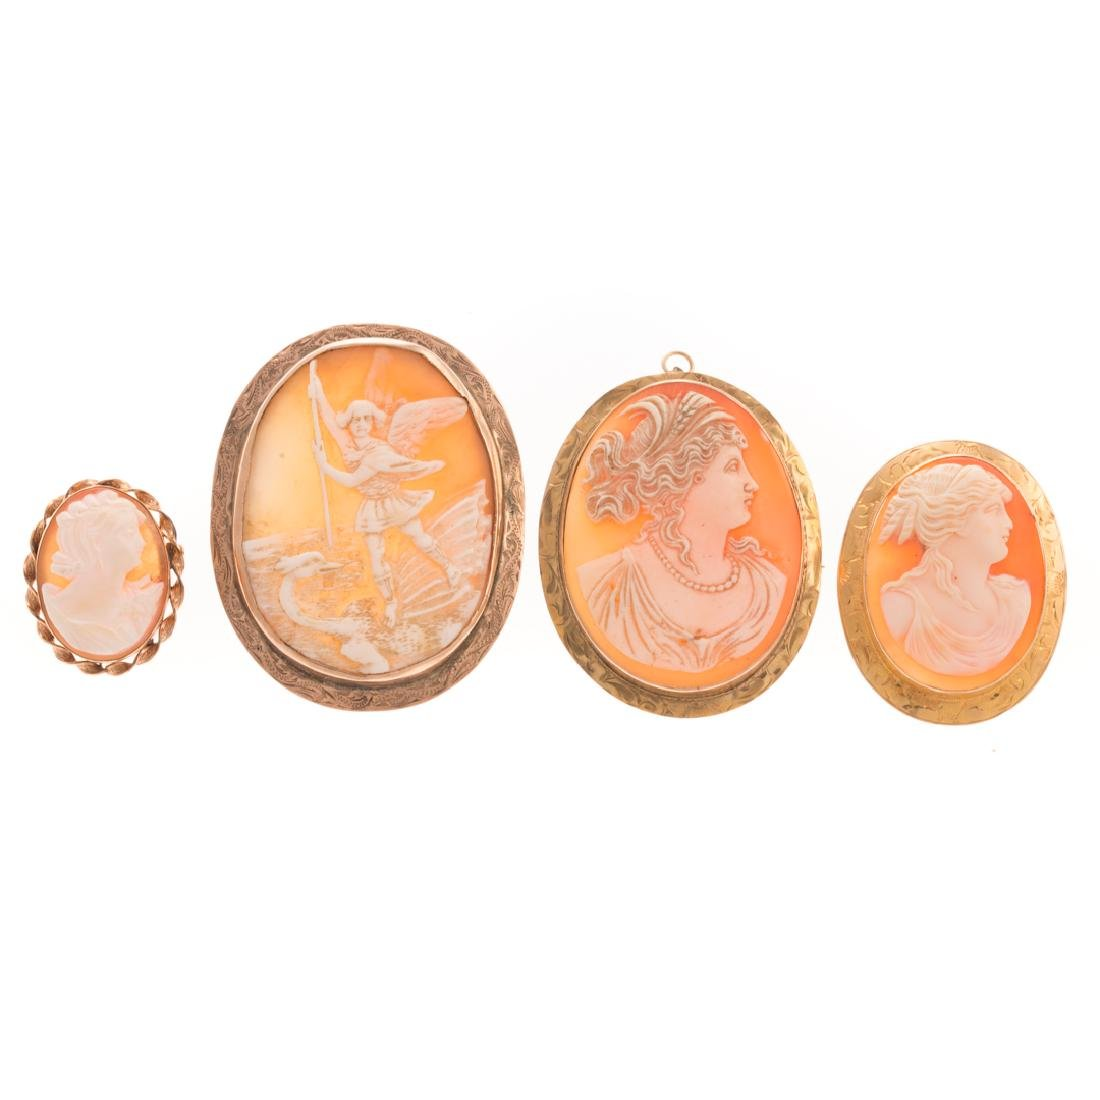 A Selection of Lady's Cameo Brooches